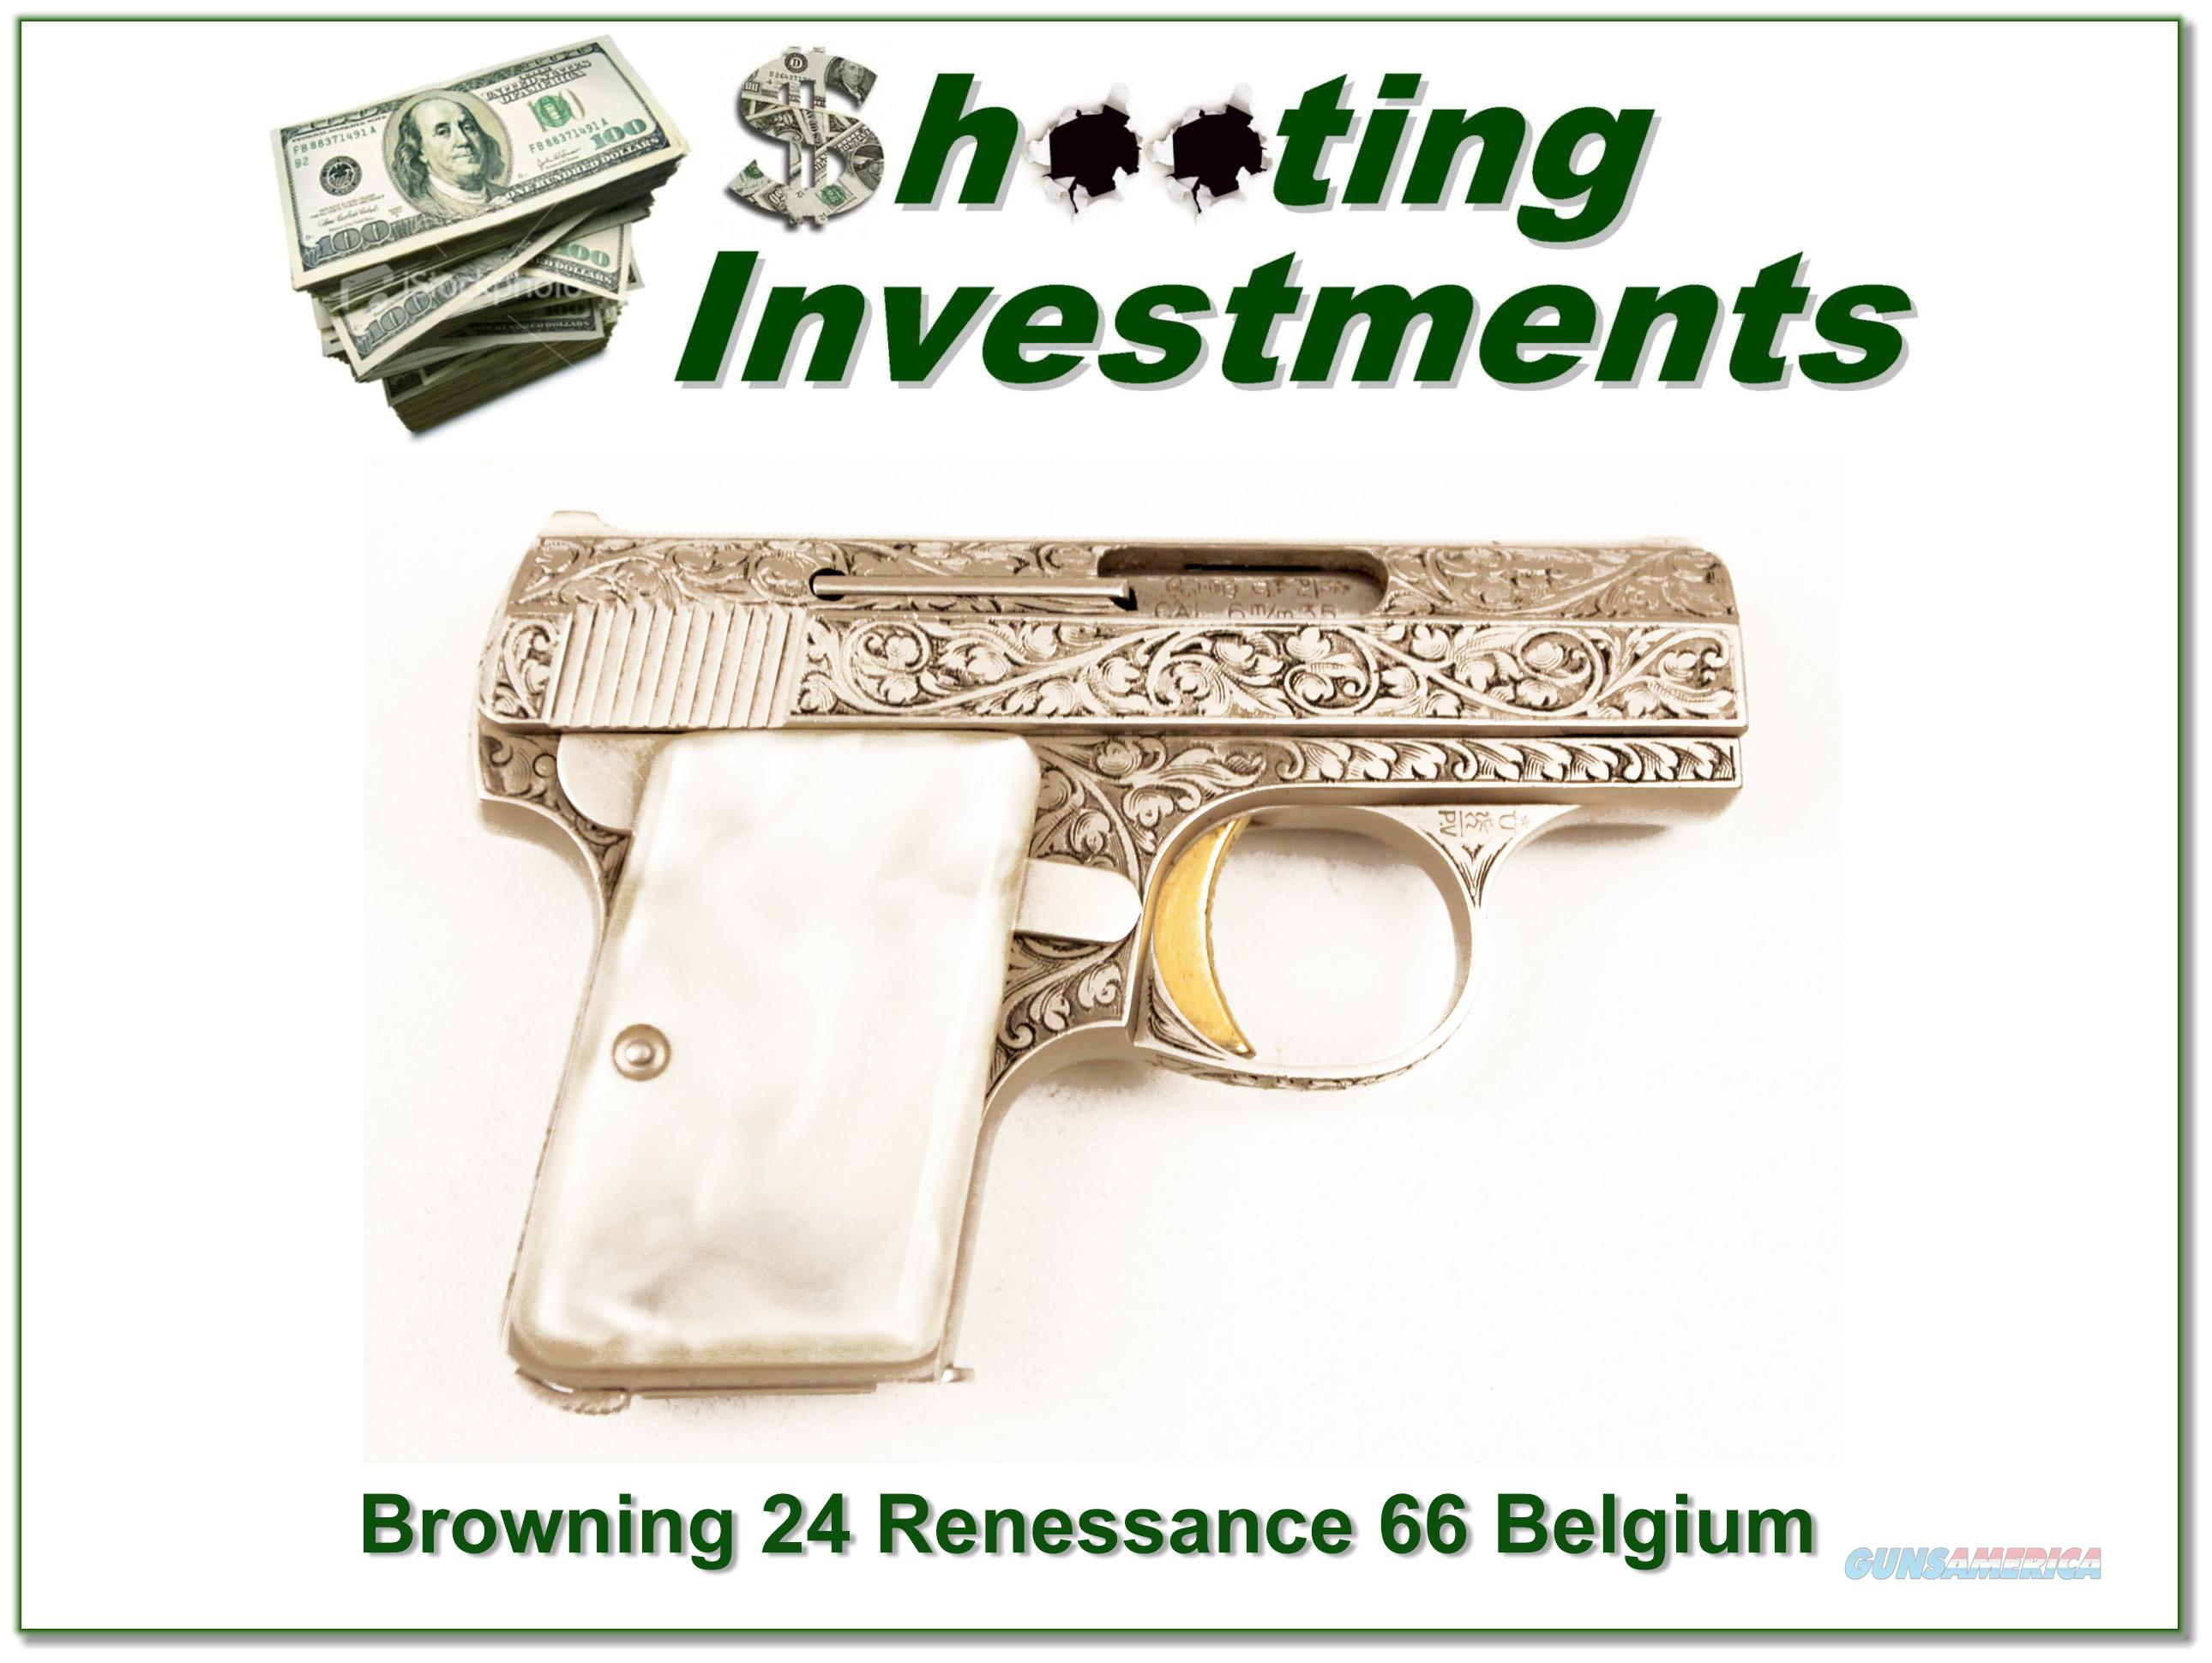 Browning 25 Auto 66 Belgium engraved Renaissance  Guns > Pistols > Browning Pistols > Other Autos